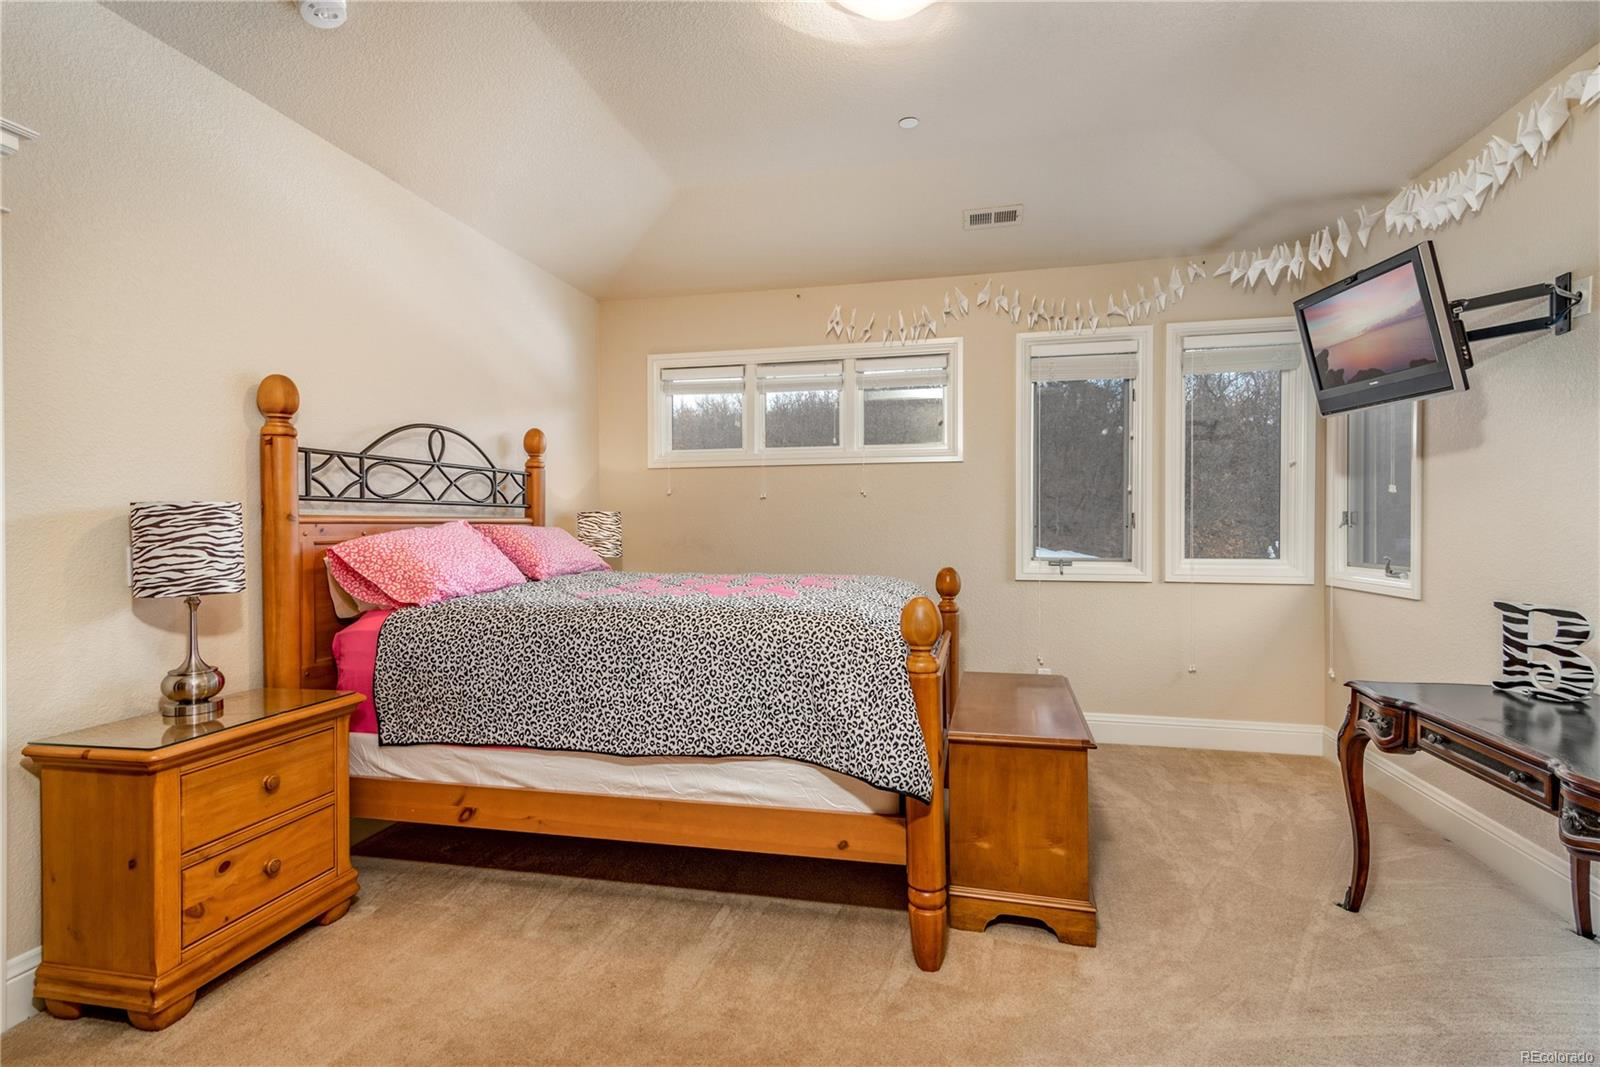 Upper level bedroom with ensuite bath and walk-in closet.